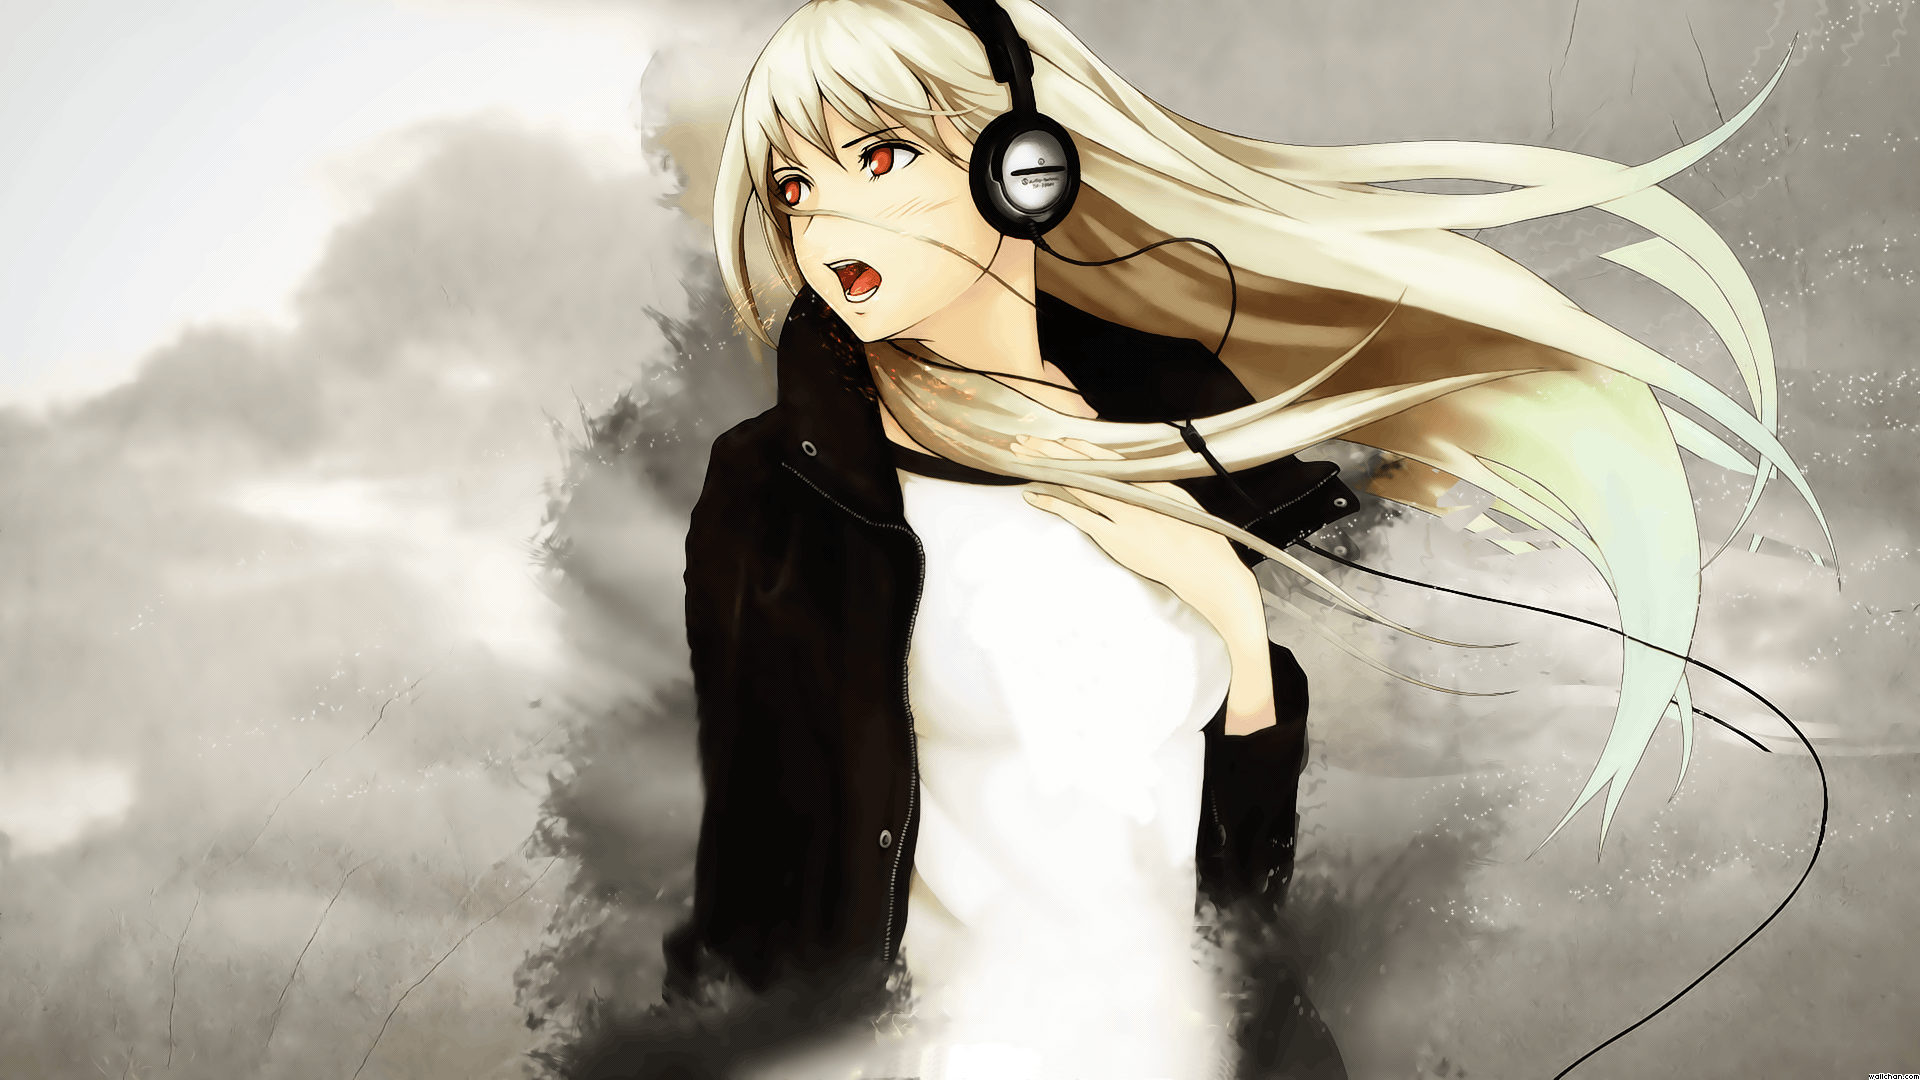 Female Anime Wallpapers - Top Free Female Anime Backgrounds